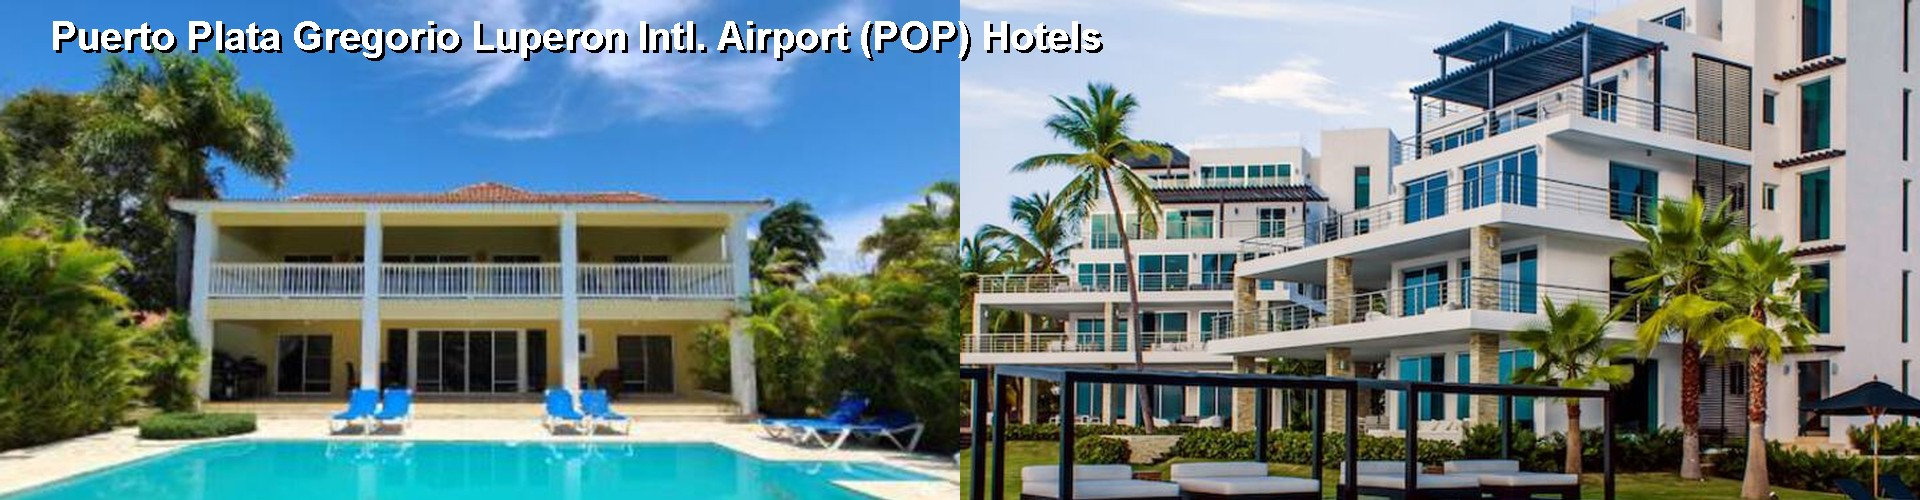 5 Best Hotels near Puerto Plata Gregorio Luperon Intl. Airport (POP)